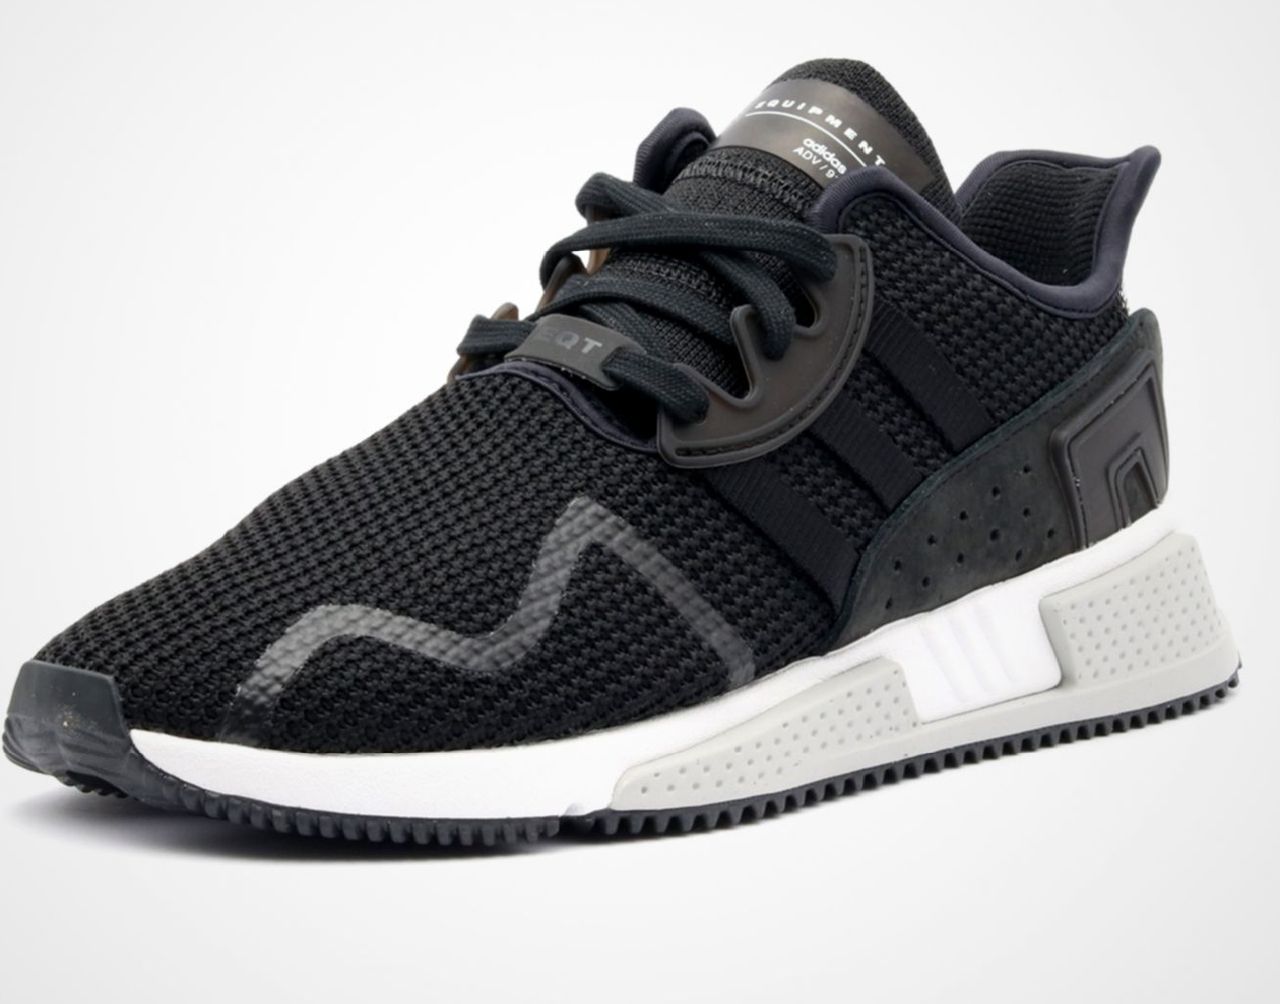 Кроссовки ADIDAS EQT Cushion ADV Core Black размеры 36-45